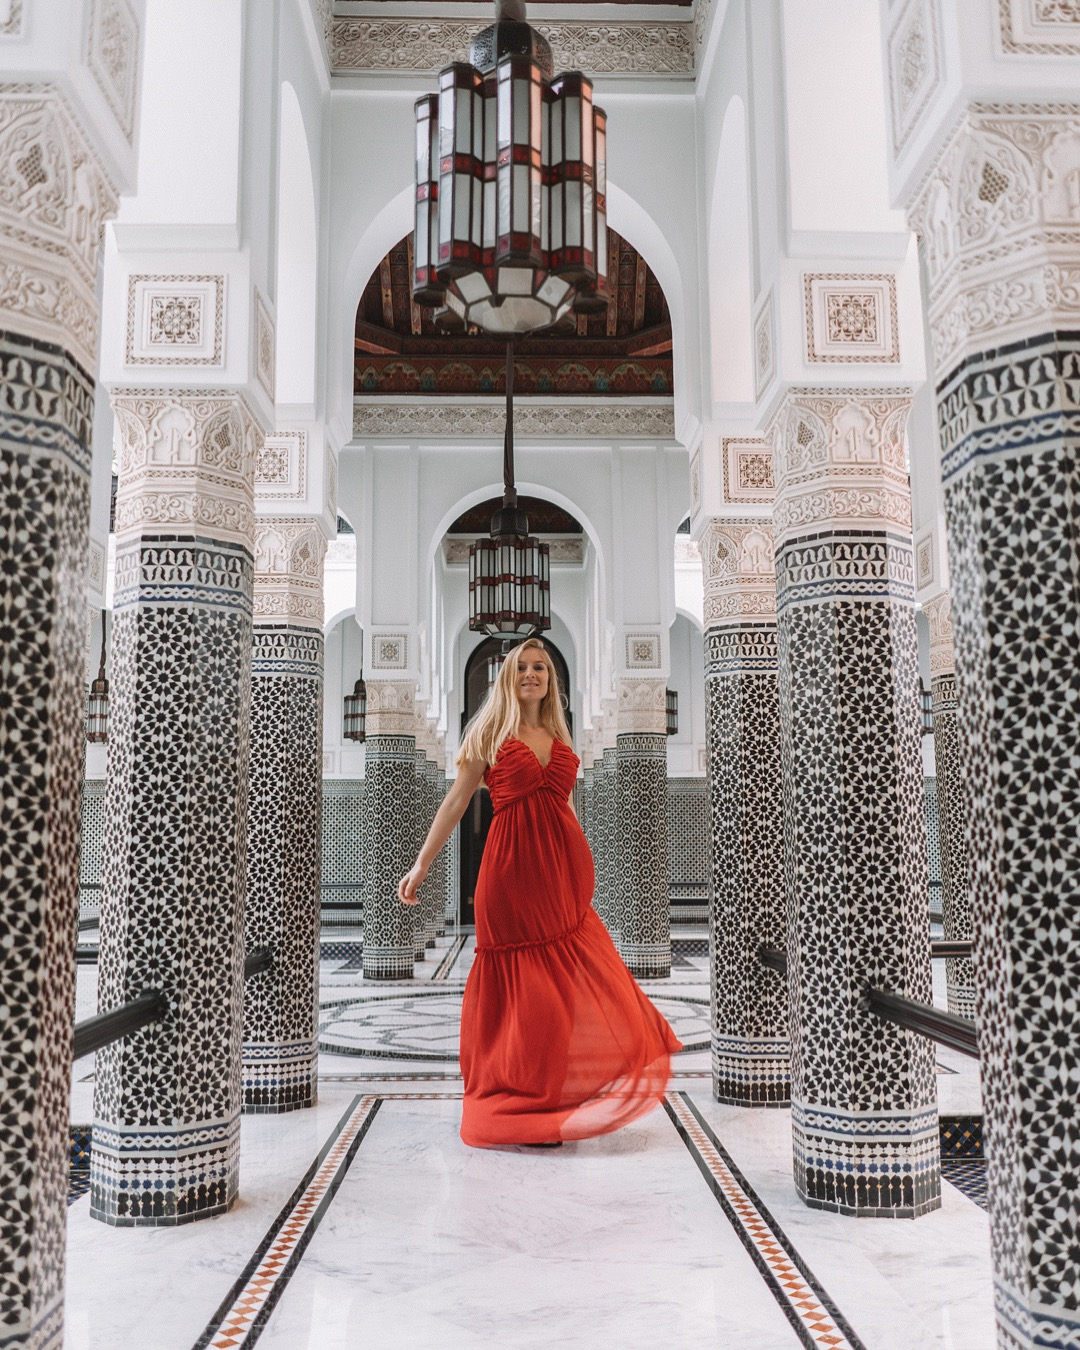 Mamounia best places to visit in Marrakech